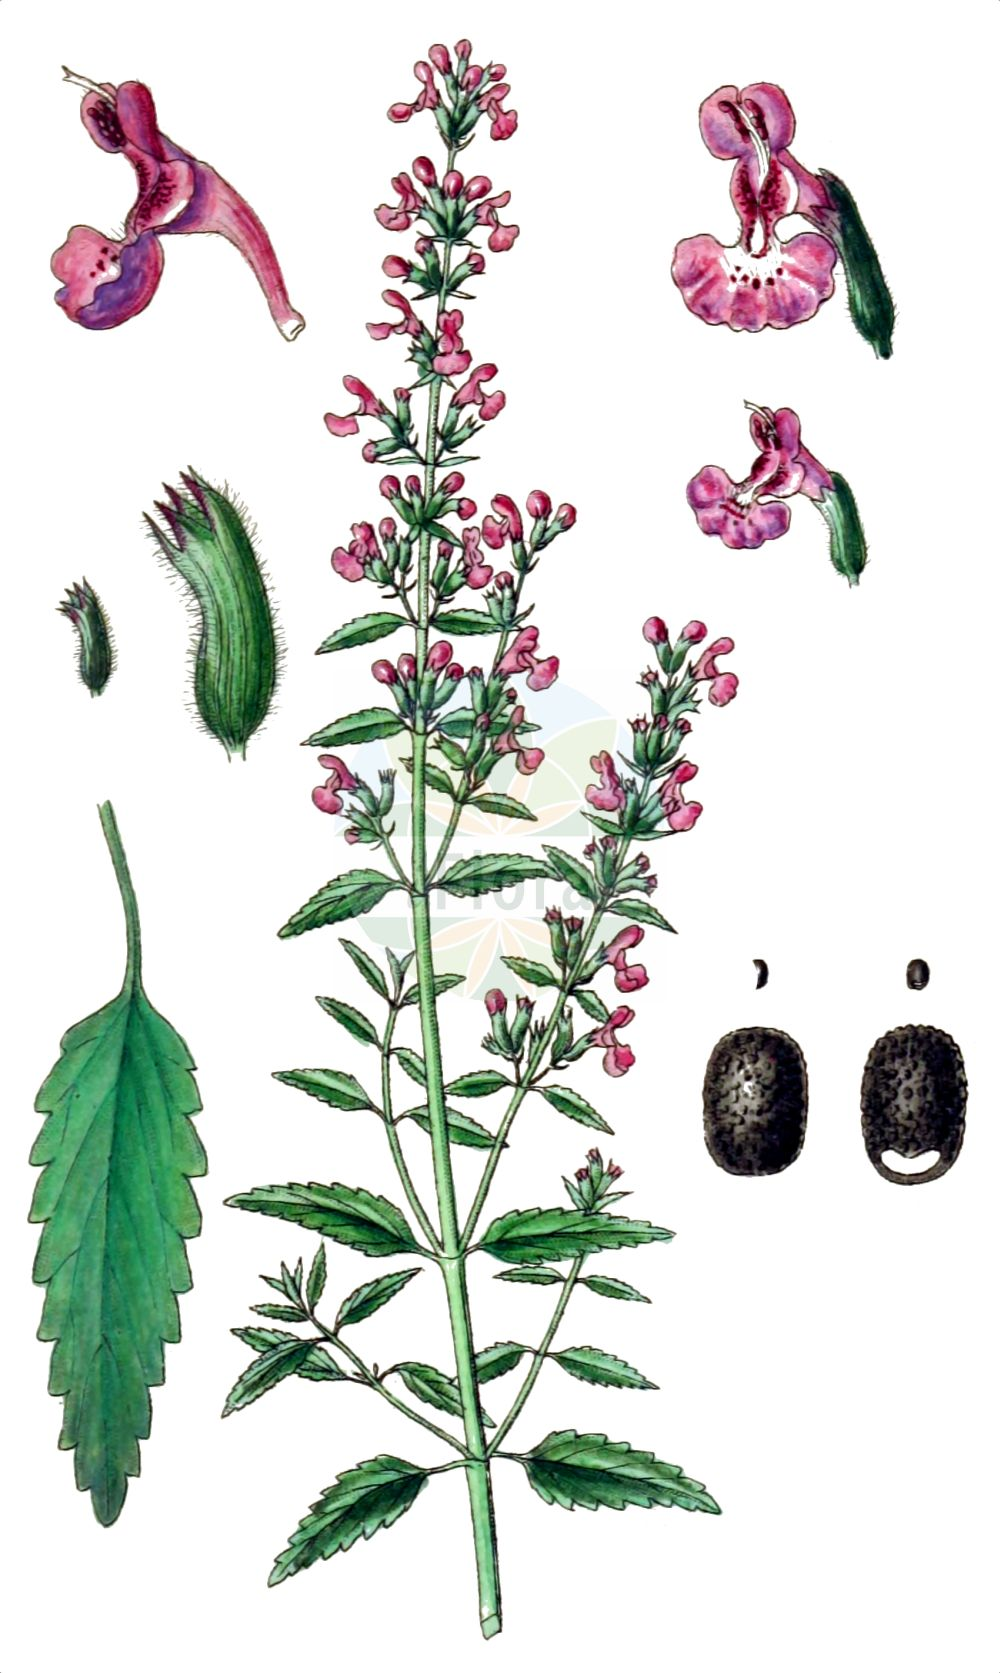 Historische Abbildung von Nepeta nepetella. Das Bild zeigt Blatt, Bluete, Frucht und Same. ---- Historical Drawing of Nepeta nepetella.The image is showing leaf, flower, fruit and seed.(Nepeta nepetella,Cataria nepetella,Glechoma nepetella,Nepeta nepetella,Nepeta,Katzenminze,Catnip,Lamiaceae,Lippenbluetengewaechse,Lippenbluetler,Nettle family,Blatt,Bluete,Frucht,Same,leaf,flower,fruit,seed,Sturm (1796f))